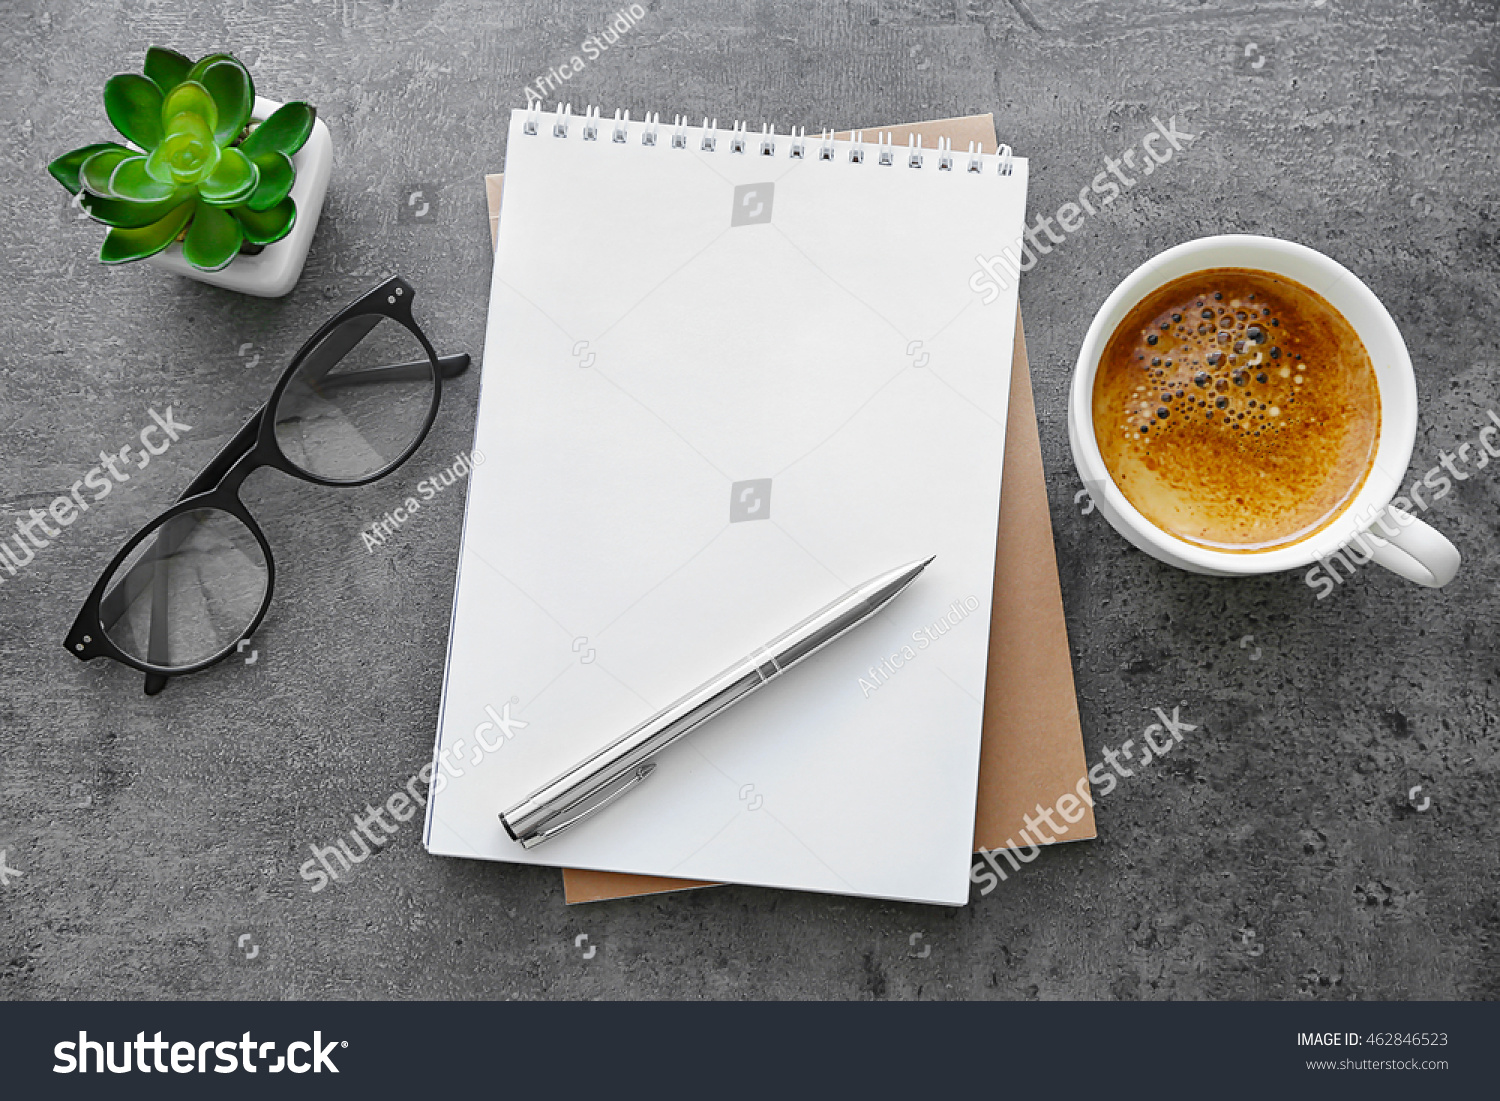 School notebook with glasses and coffee on table #462846523